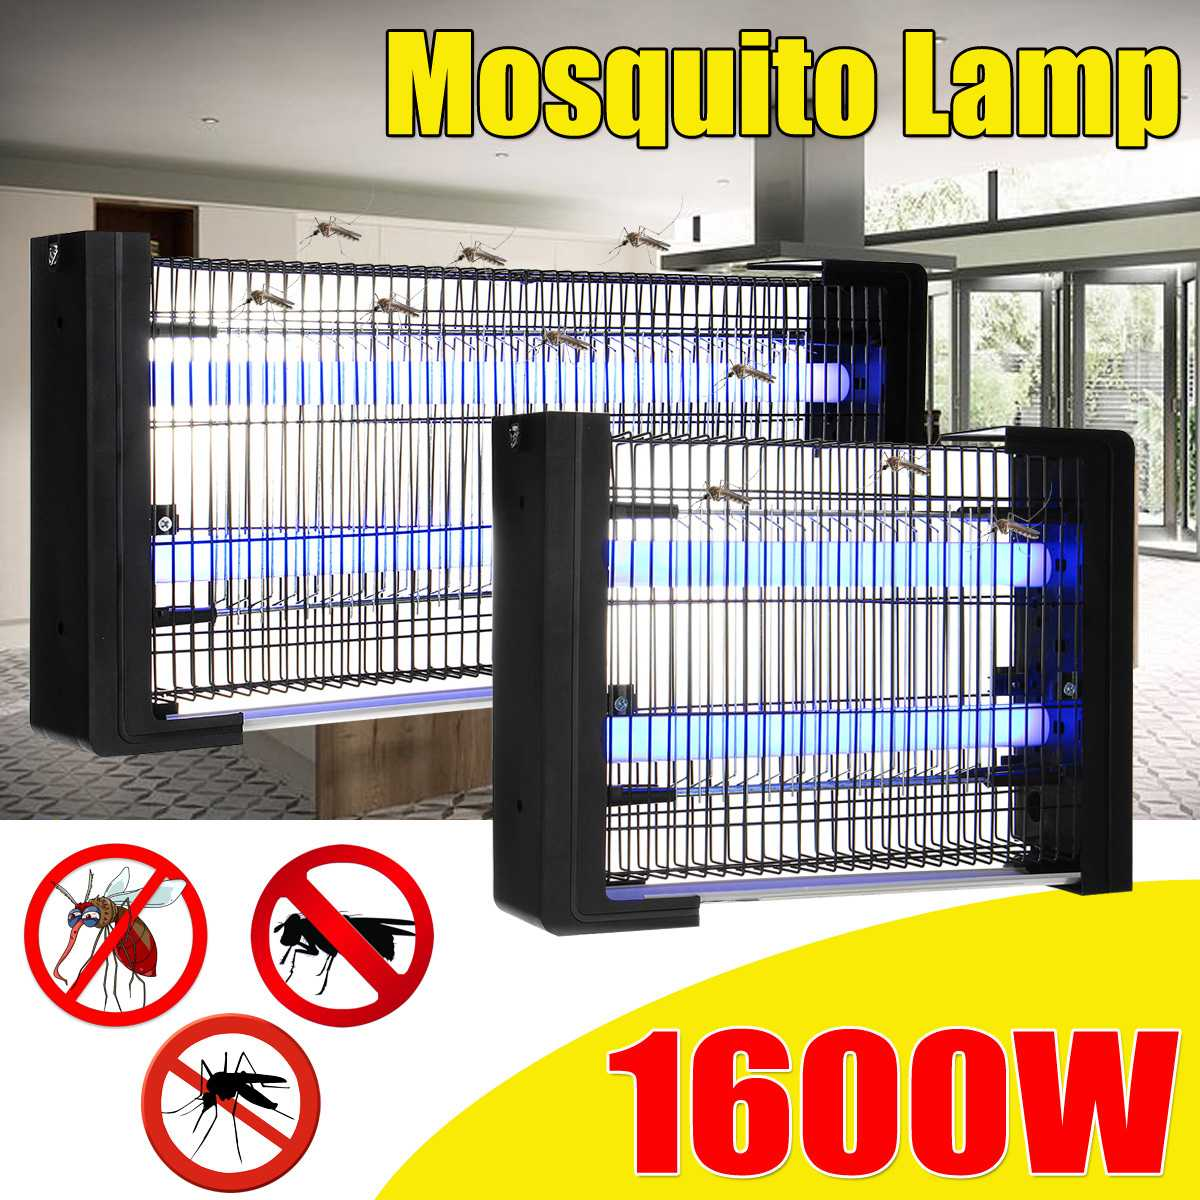 220V Electric Shock Fly Bug Zapper Mosquito Insect Killer Led Lamp 3/6W Energy Saving Anti Mosquito Repellent Lamp